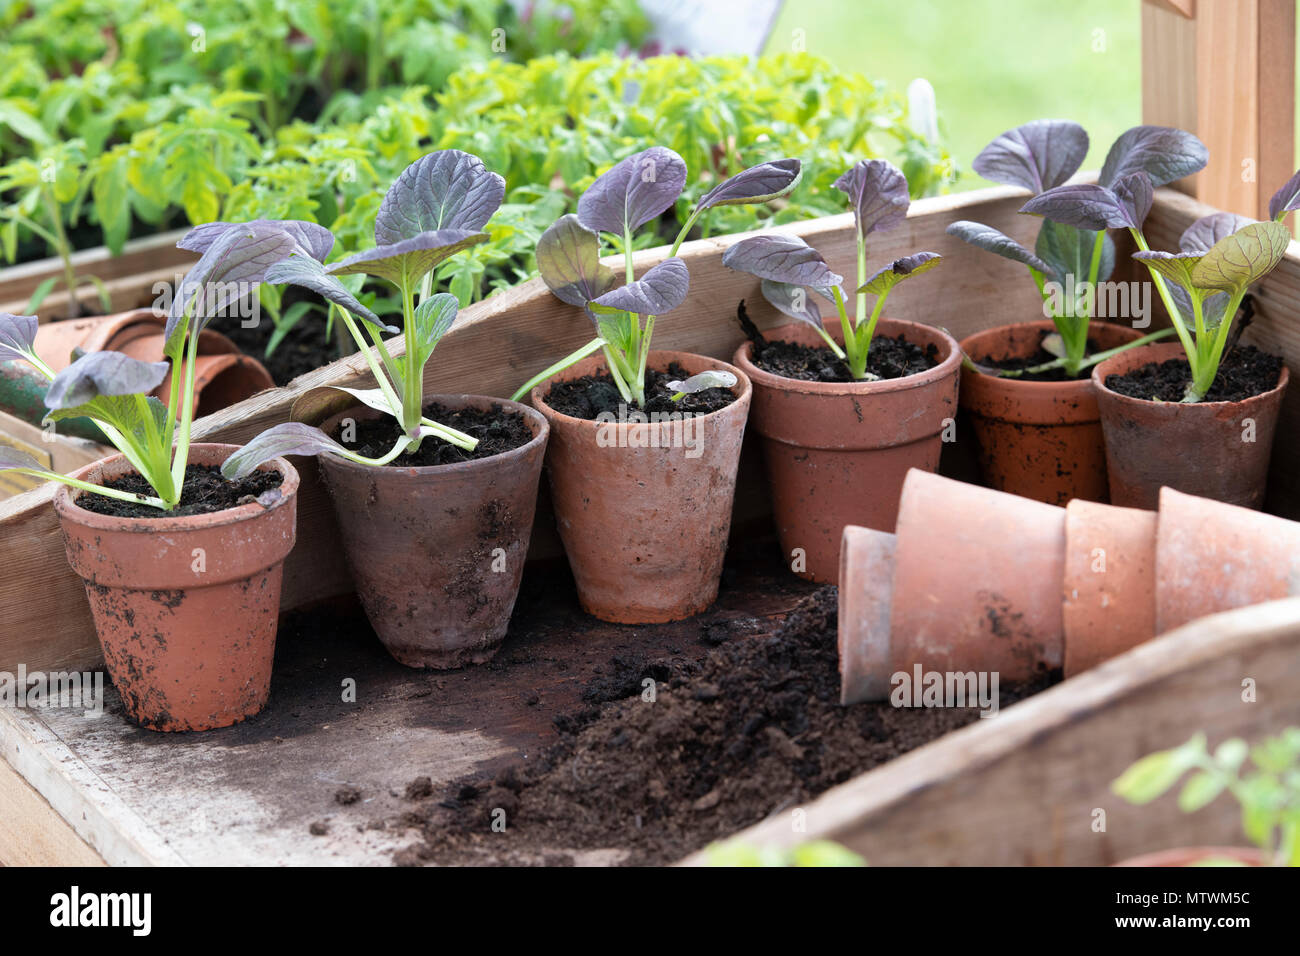 Potting up young plants in a greenhouse in spring. UK - Stock Image